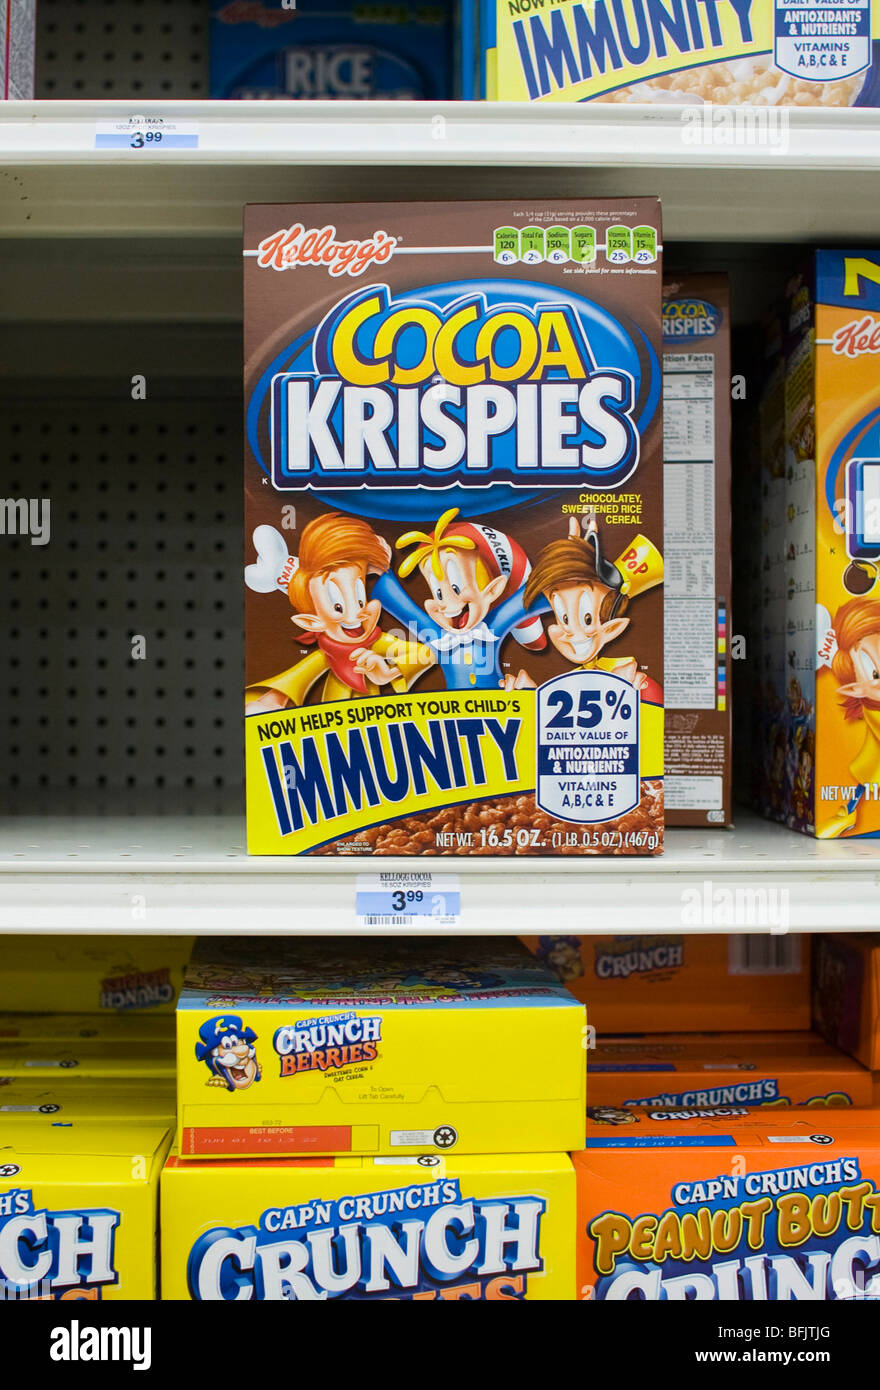 3 November 2009 – Frederick, Maryland – A Kellogg's Rice Krispies Treat cereal box with labeling claiming that the - Stock Image